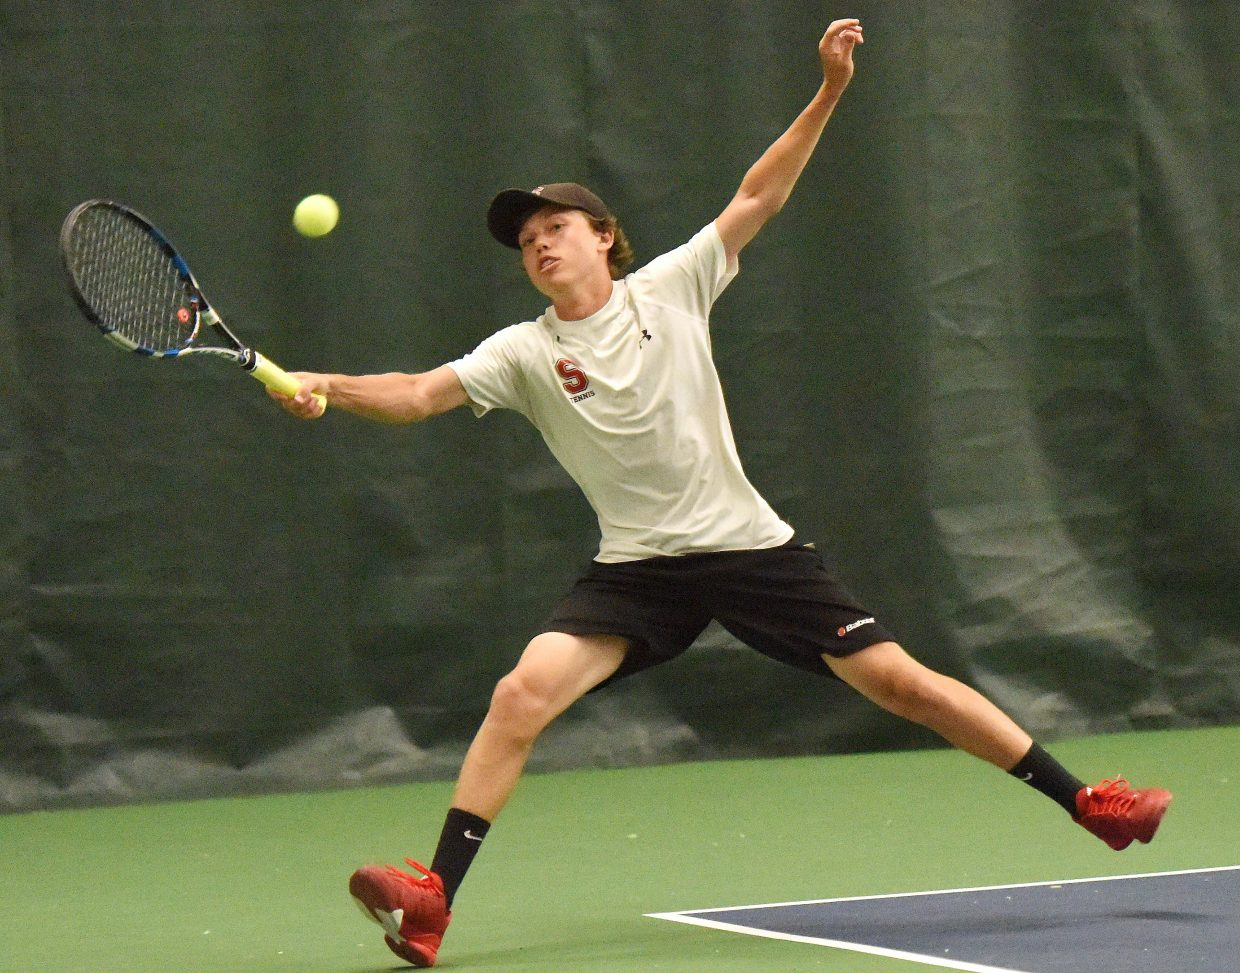 Charlie Smith reaches for a ball Sunday during the Steamboat Tennis Association tournament in Steamboat Springs.